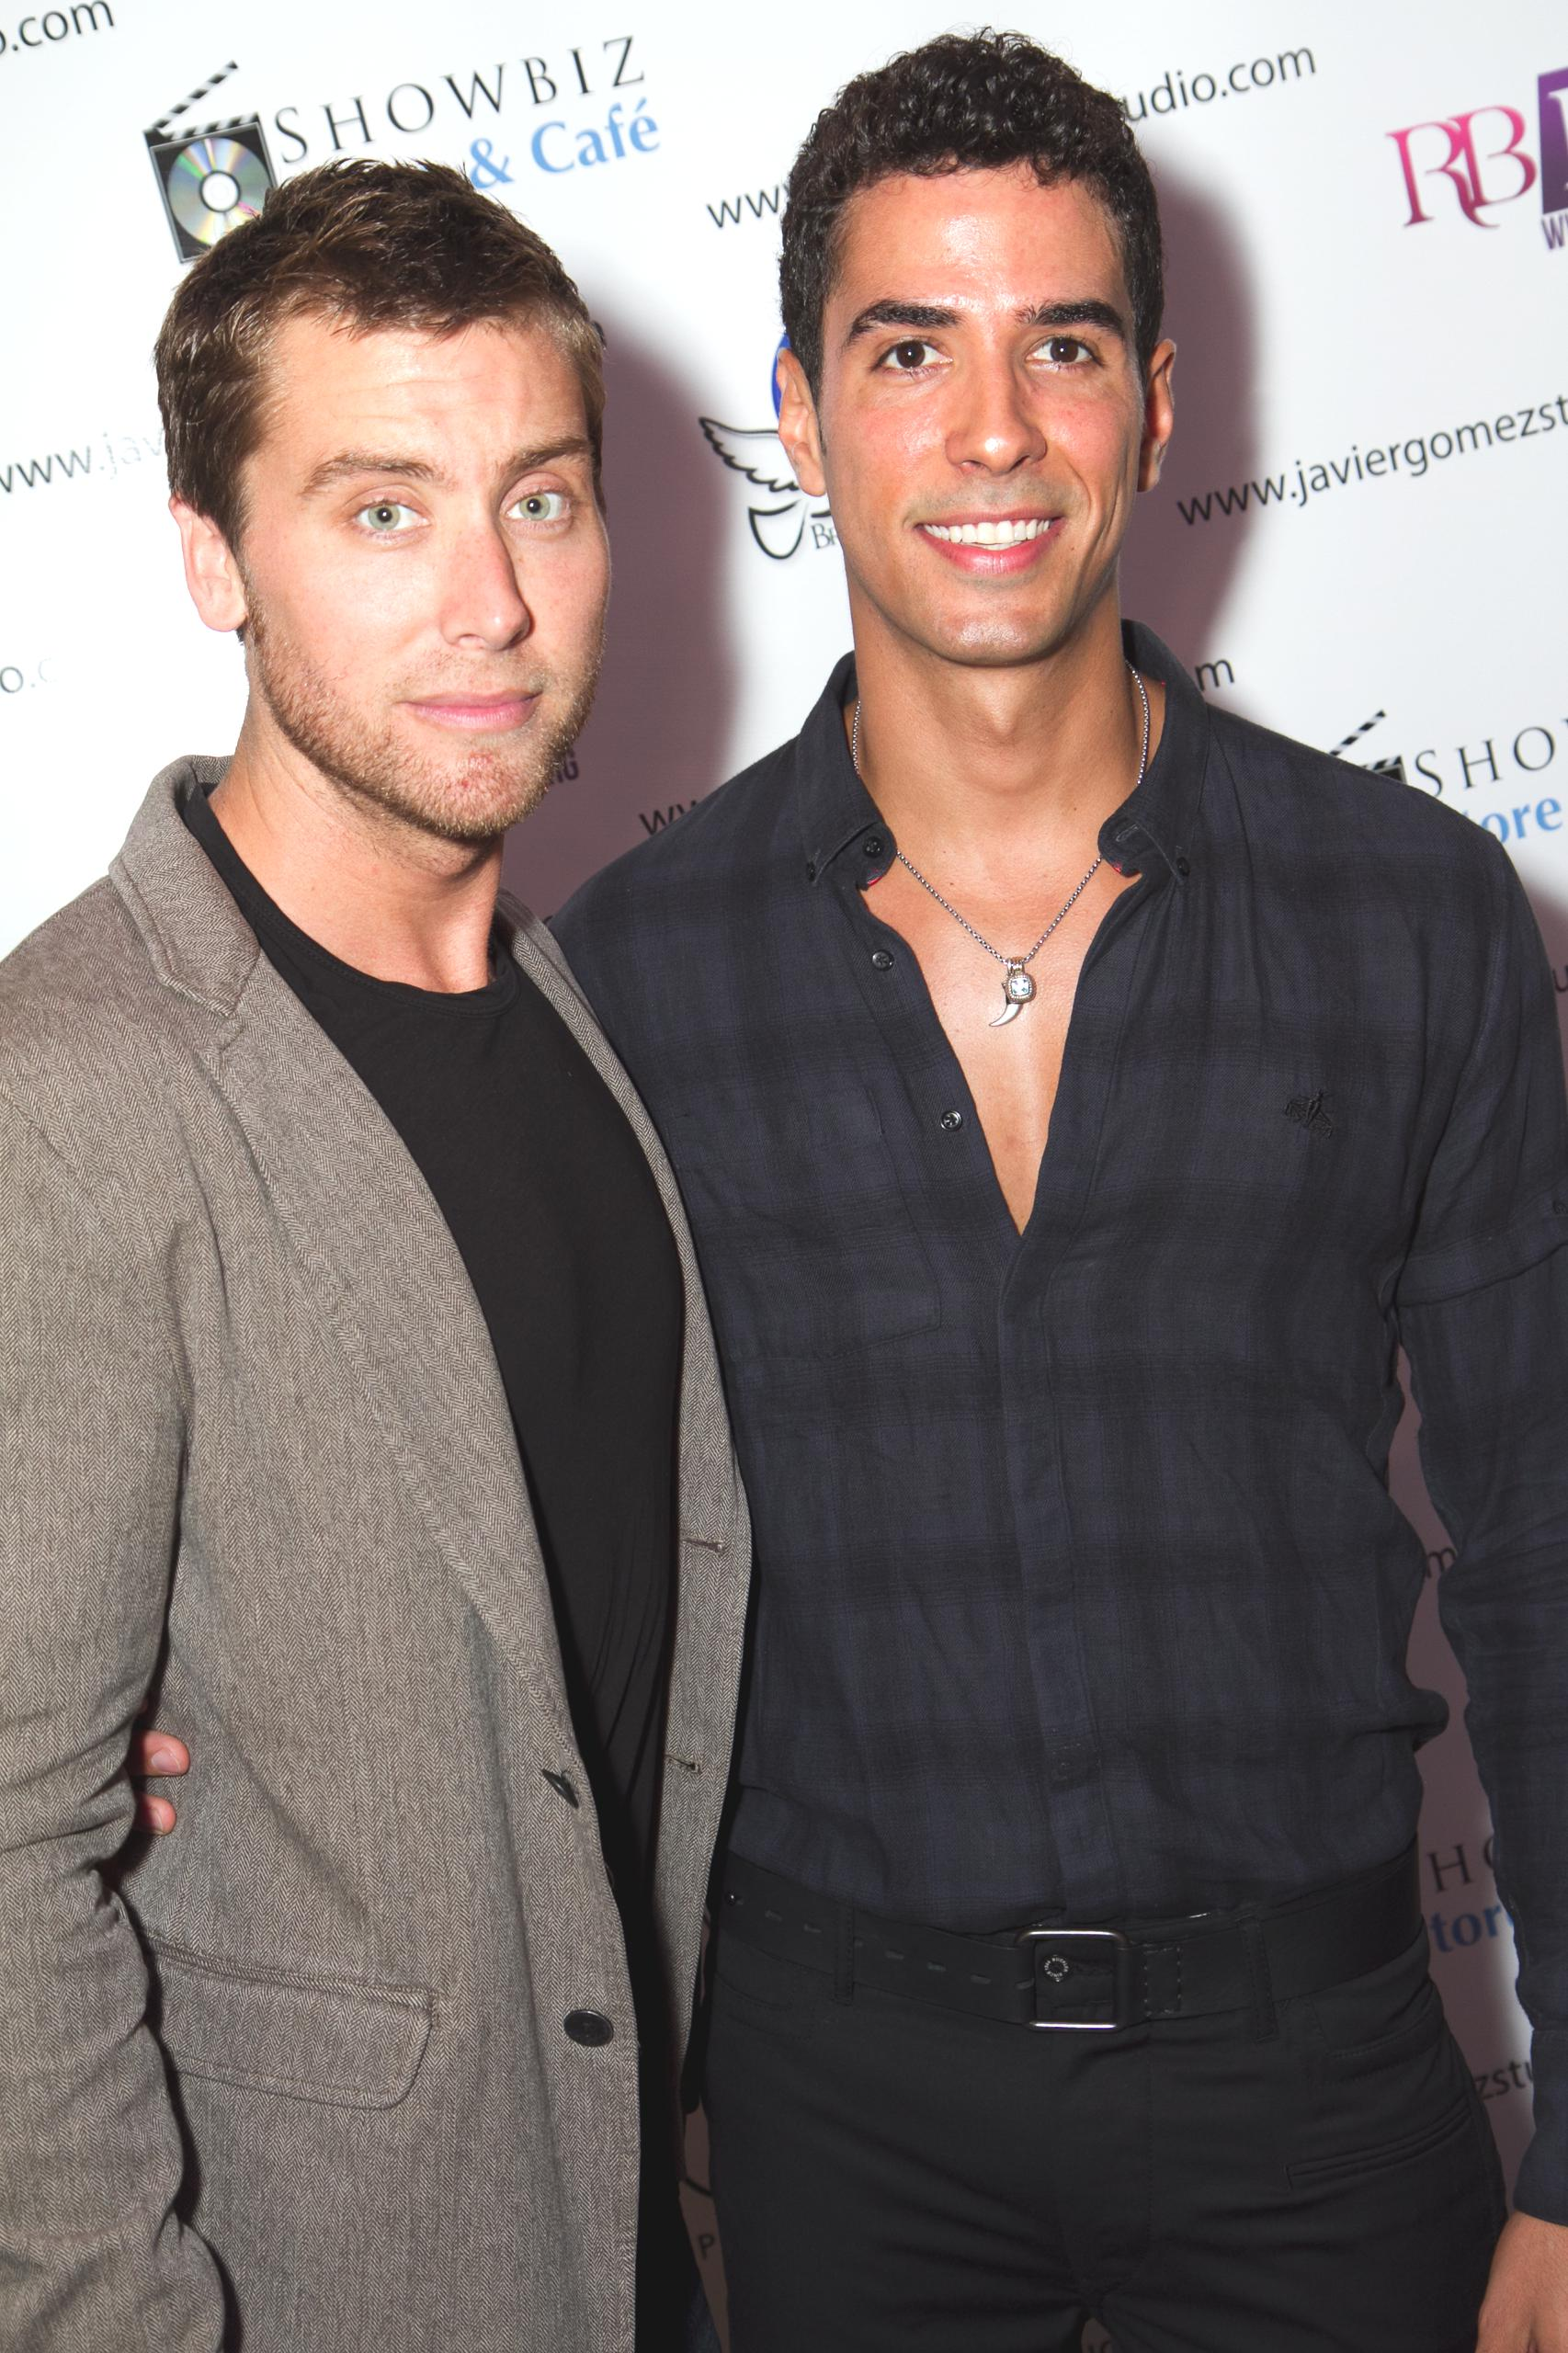 Javier Gomez Photographer with Lance Bass from